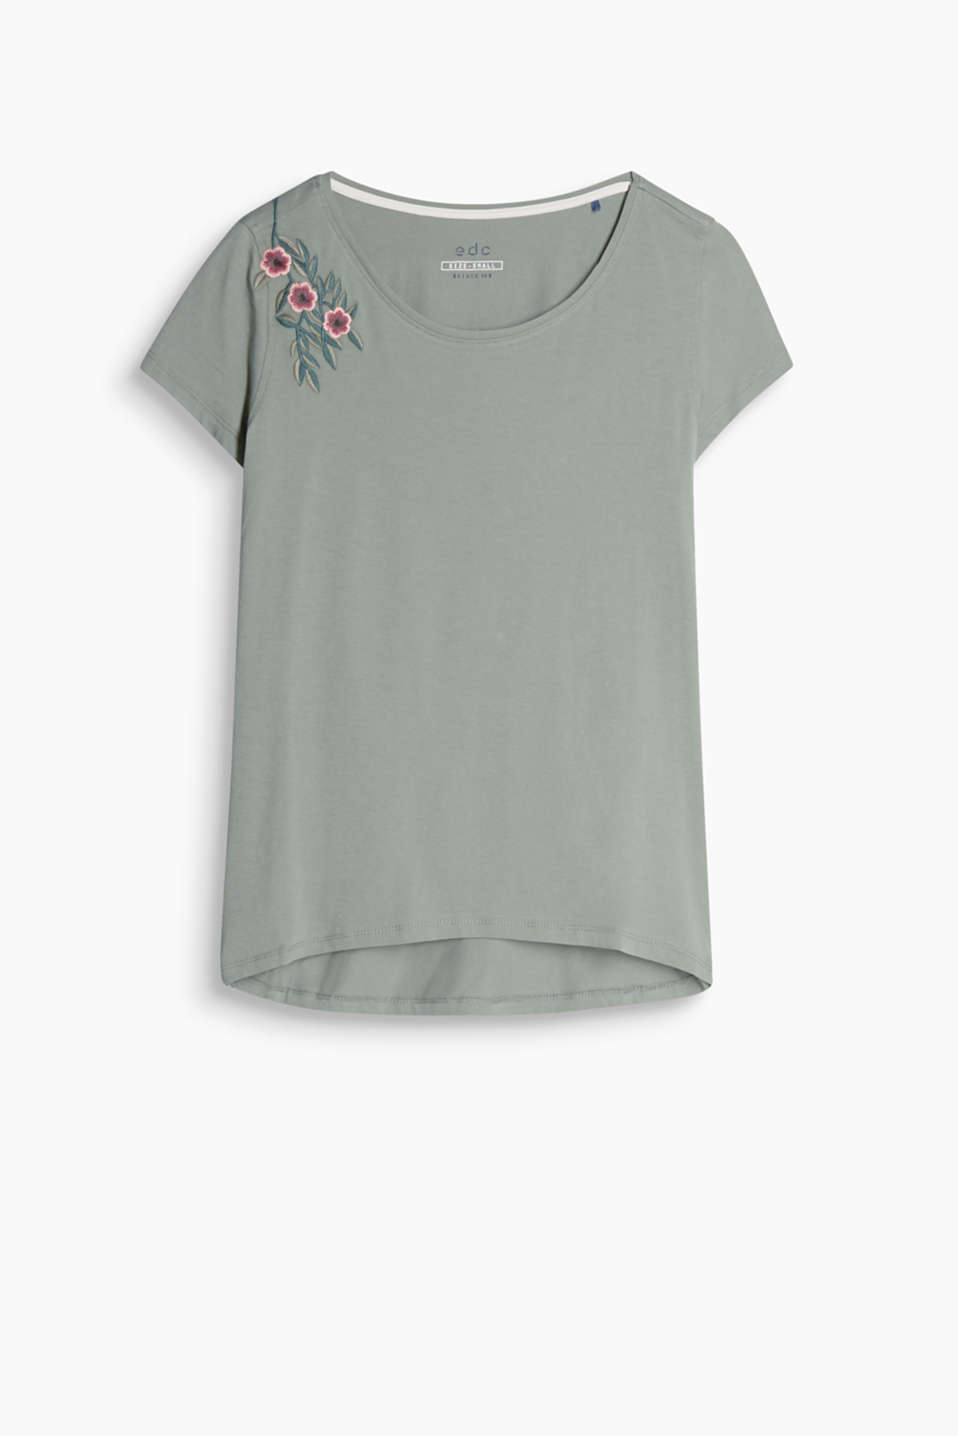 With floral embroidery: round neck T-shirt in soft cotton jersey